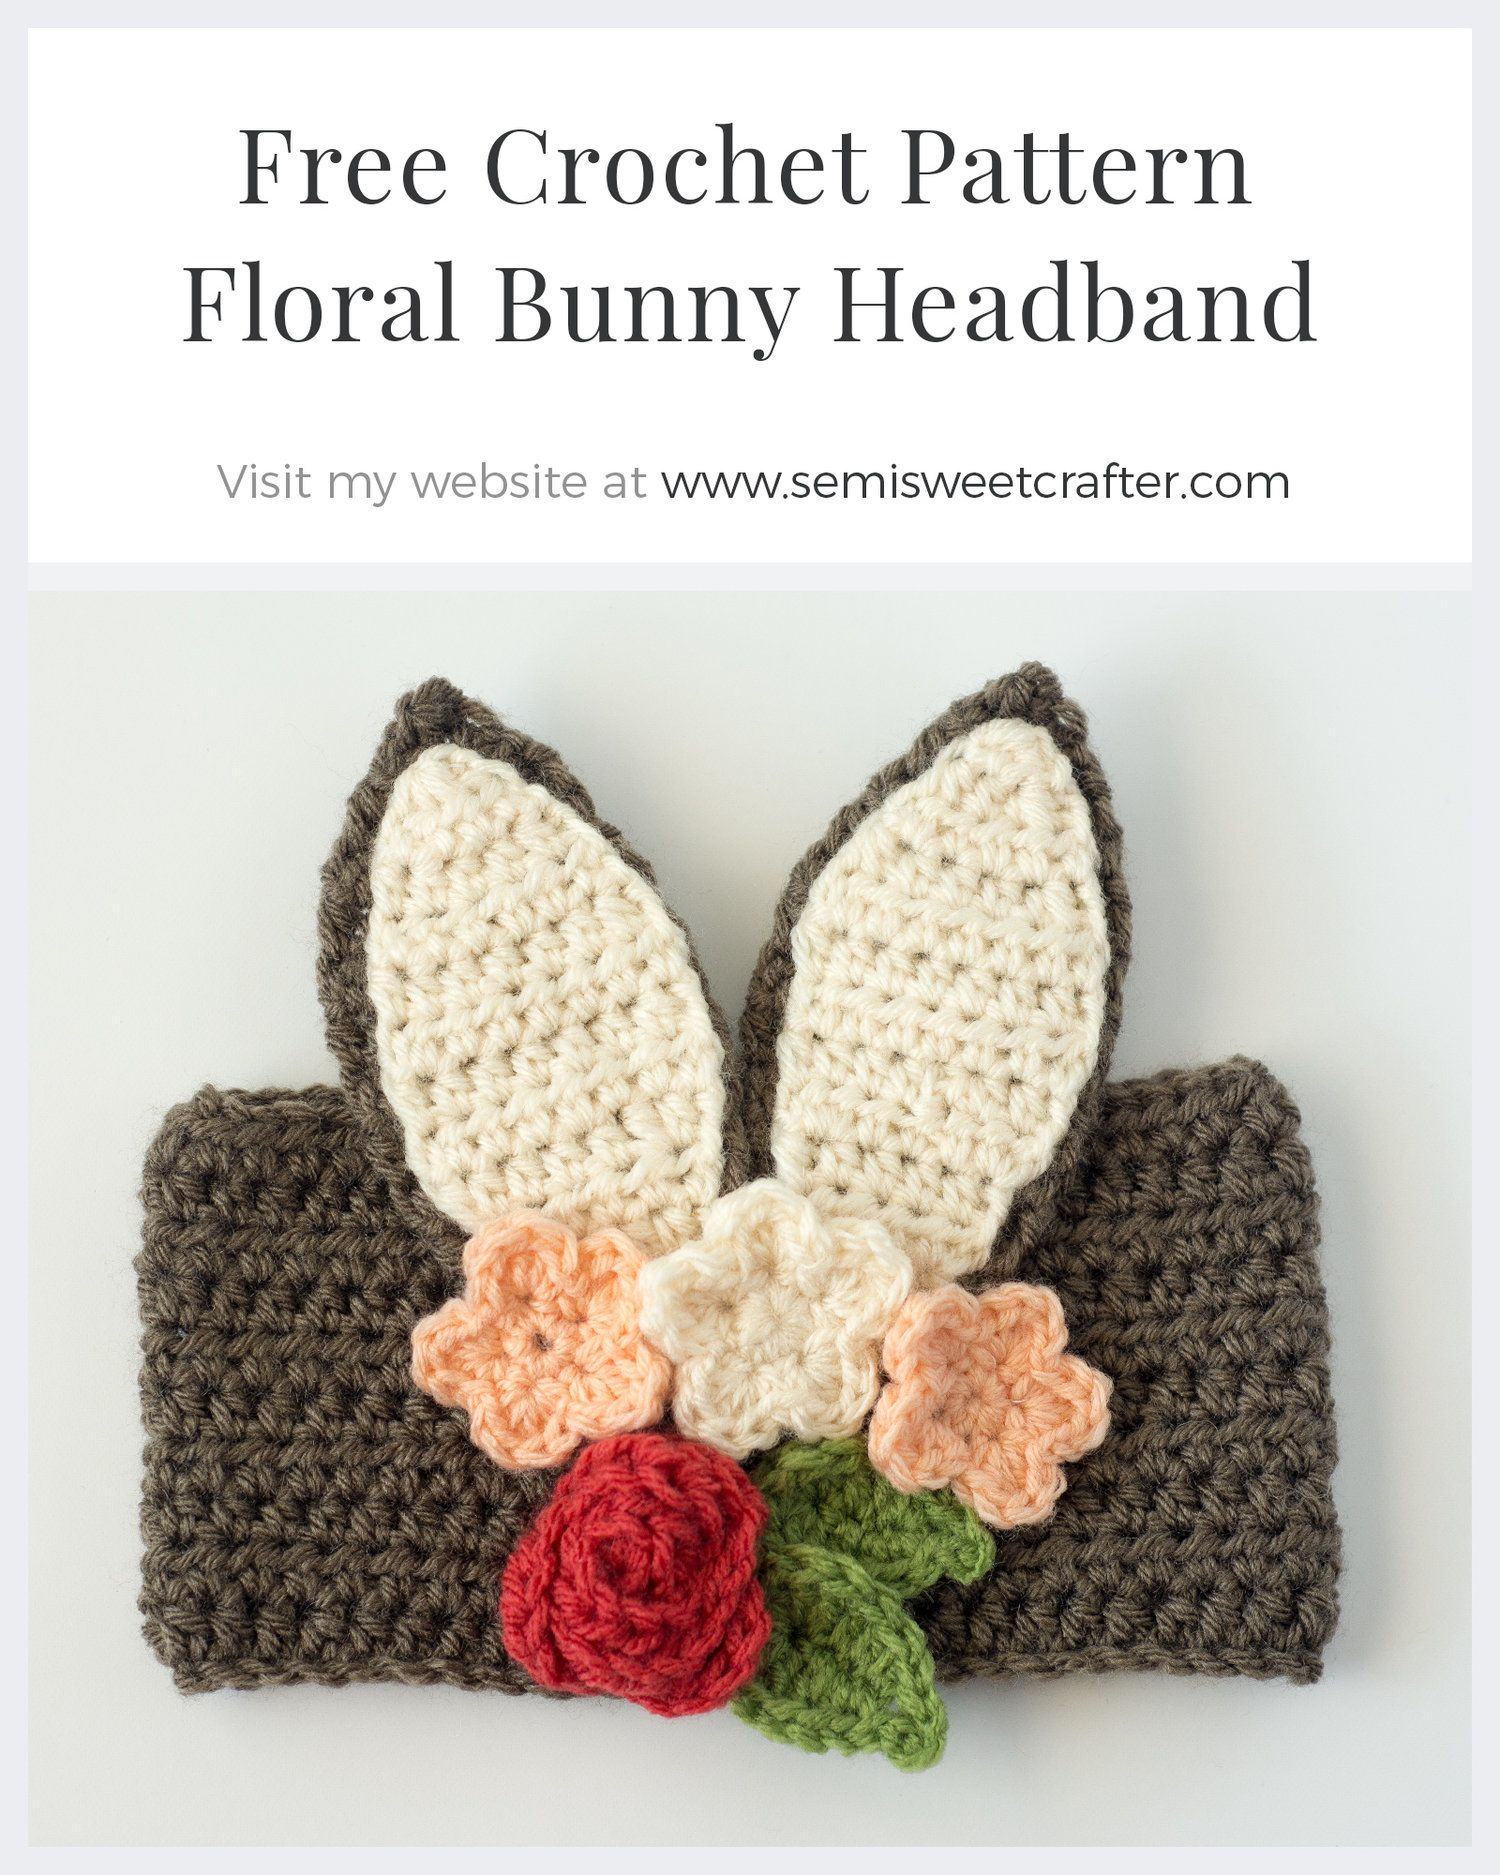 Floral Bunny Headband | Sewing, Crocheting & Crafts | Pinterest ...